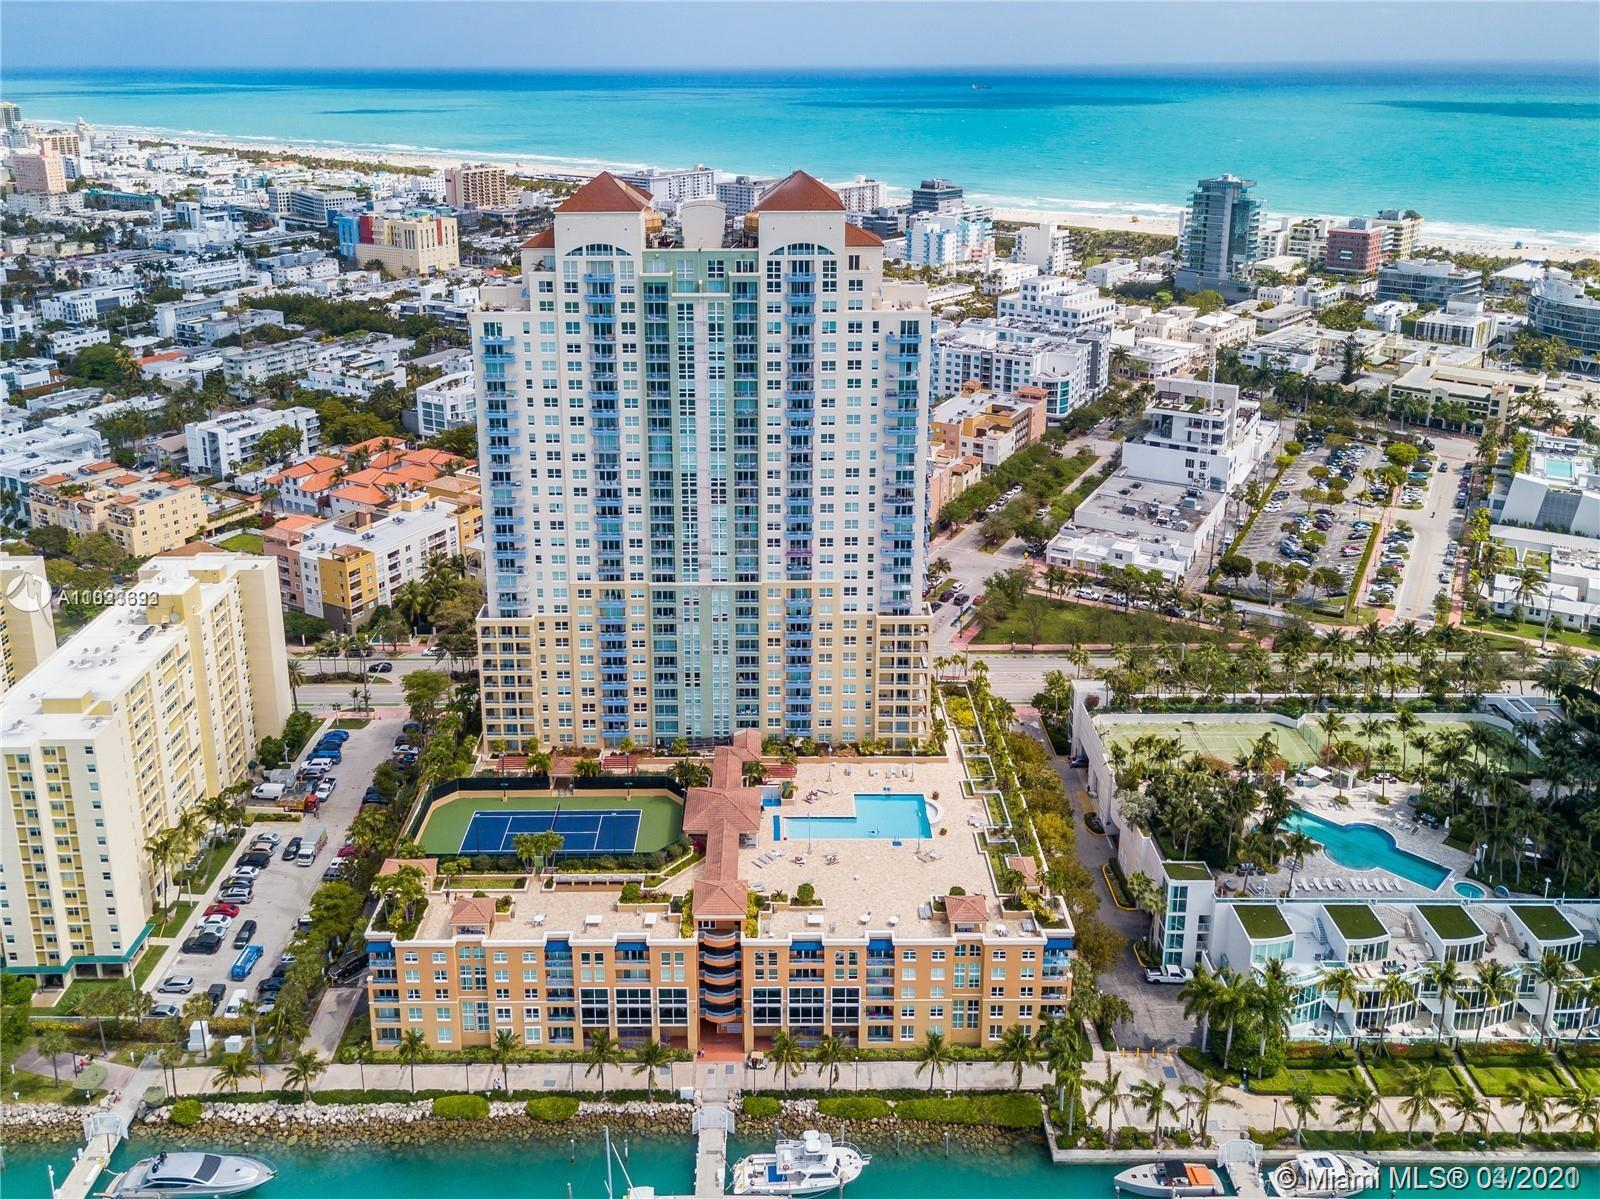 A MUST SEE. LUXURY CONDO IN SOUTH POINTE PARK WITH MIAMI BEACH MARINA ACCESS. UNIT FEATURES A SPLIT PLAN, OPEN BALCONY WITH BEAUTIFUL VIEWS, STAINLESS STEEL APPLIANCES, GRANITE KITCHEN COUNTERTOP. BUILDING AMENITIES INCLUDES GYM, TENNIS COURT, HEATED POOL AND TUB, BBQ AREA, 24 HR DOORMAN, VALET PARKING SERVICE, HAIR SALON AND CONVINIENCE STORE. THIS UNIT IS WALKING DISTANCE TO THE BEACH, GREAT SOFI RESTAURANTS, MARKETS AND SHOPS. A/C AND WATER HEATER WERE REPLACED 2 YRS AGO. HOA INCLUDES WATER, CABLE TV, INTERNET. PROPERTY IS CURRENTLY RENTED UNTIL MARCH 2022